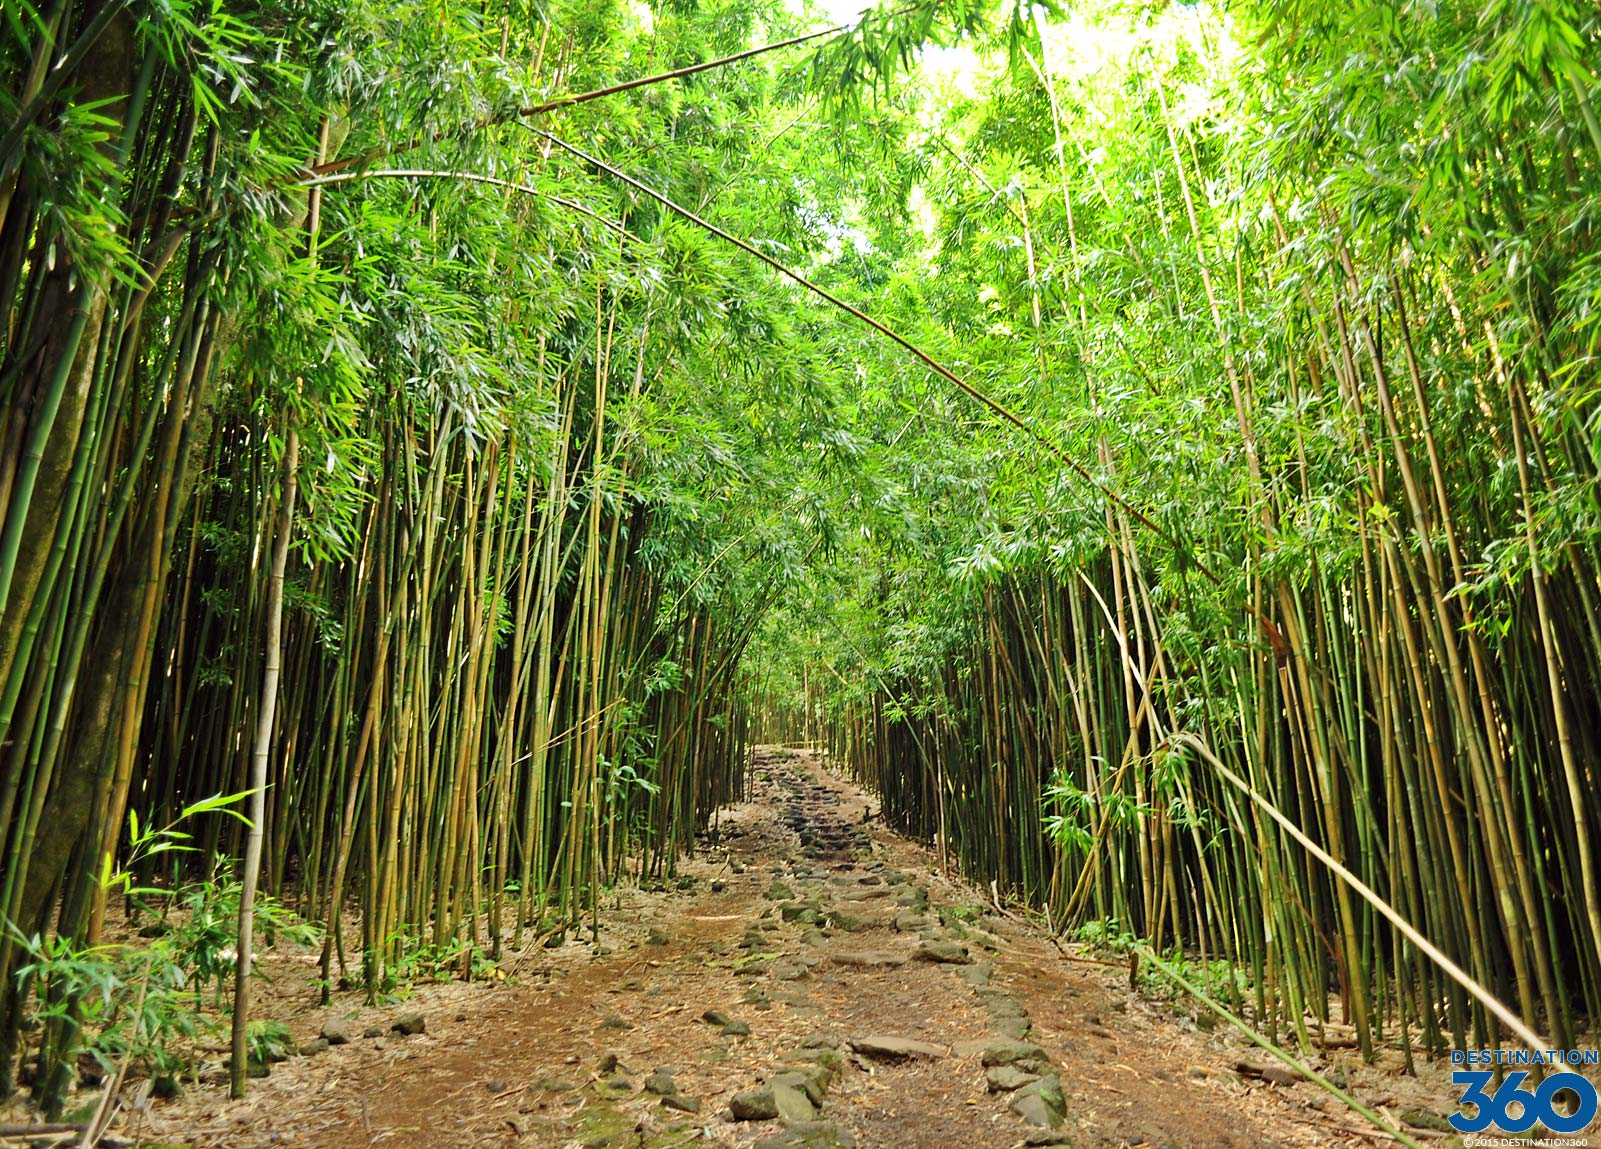 Maui Bamboo Forest Virtual Tour